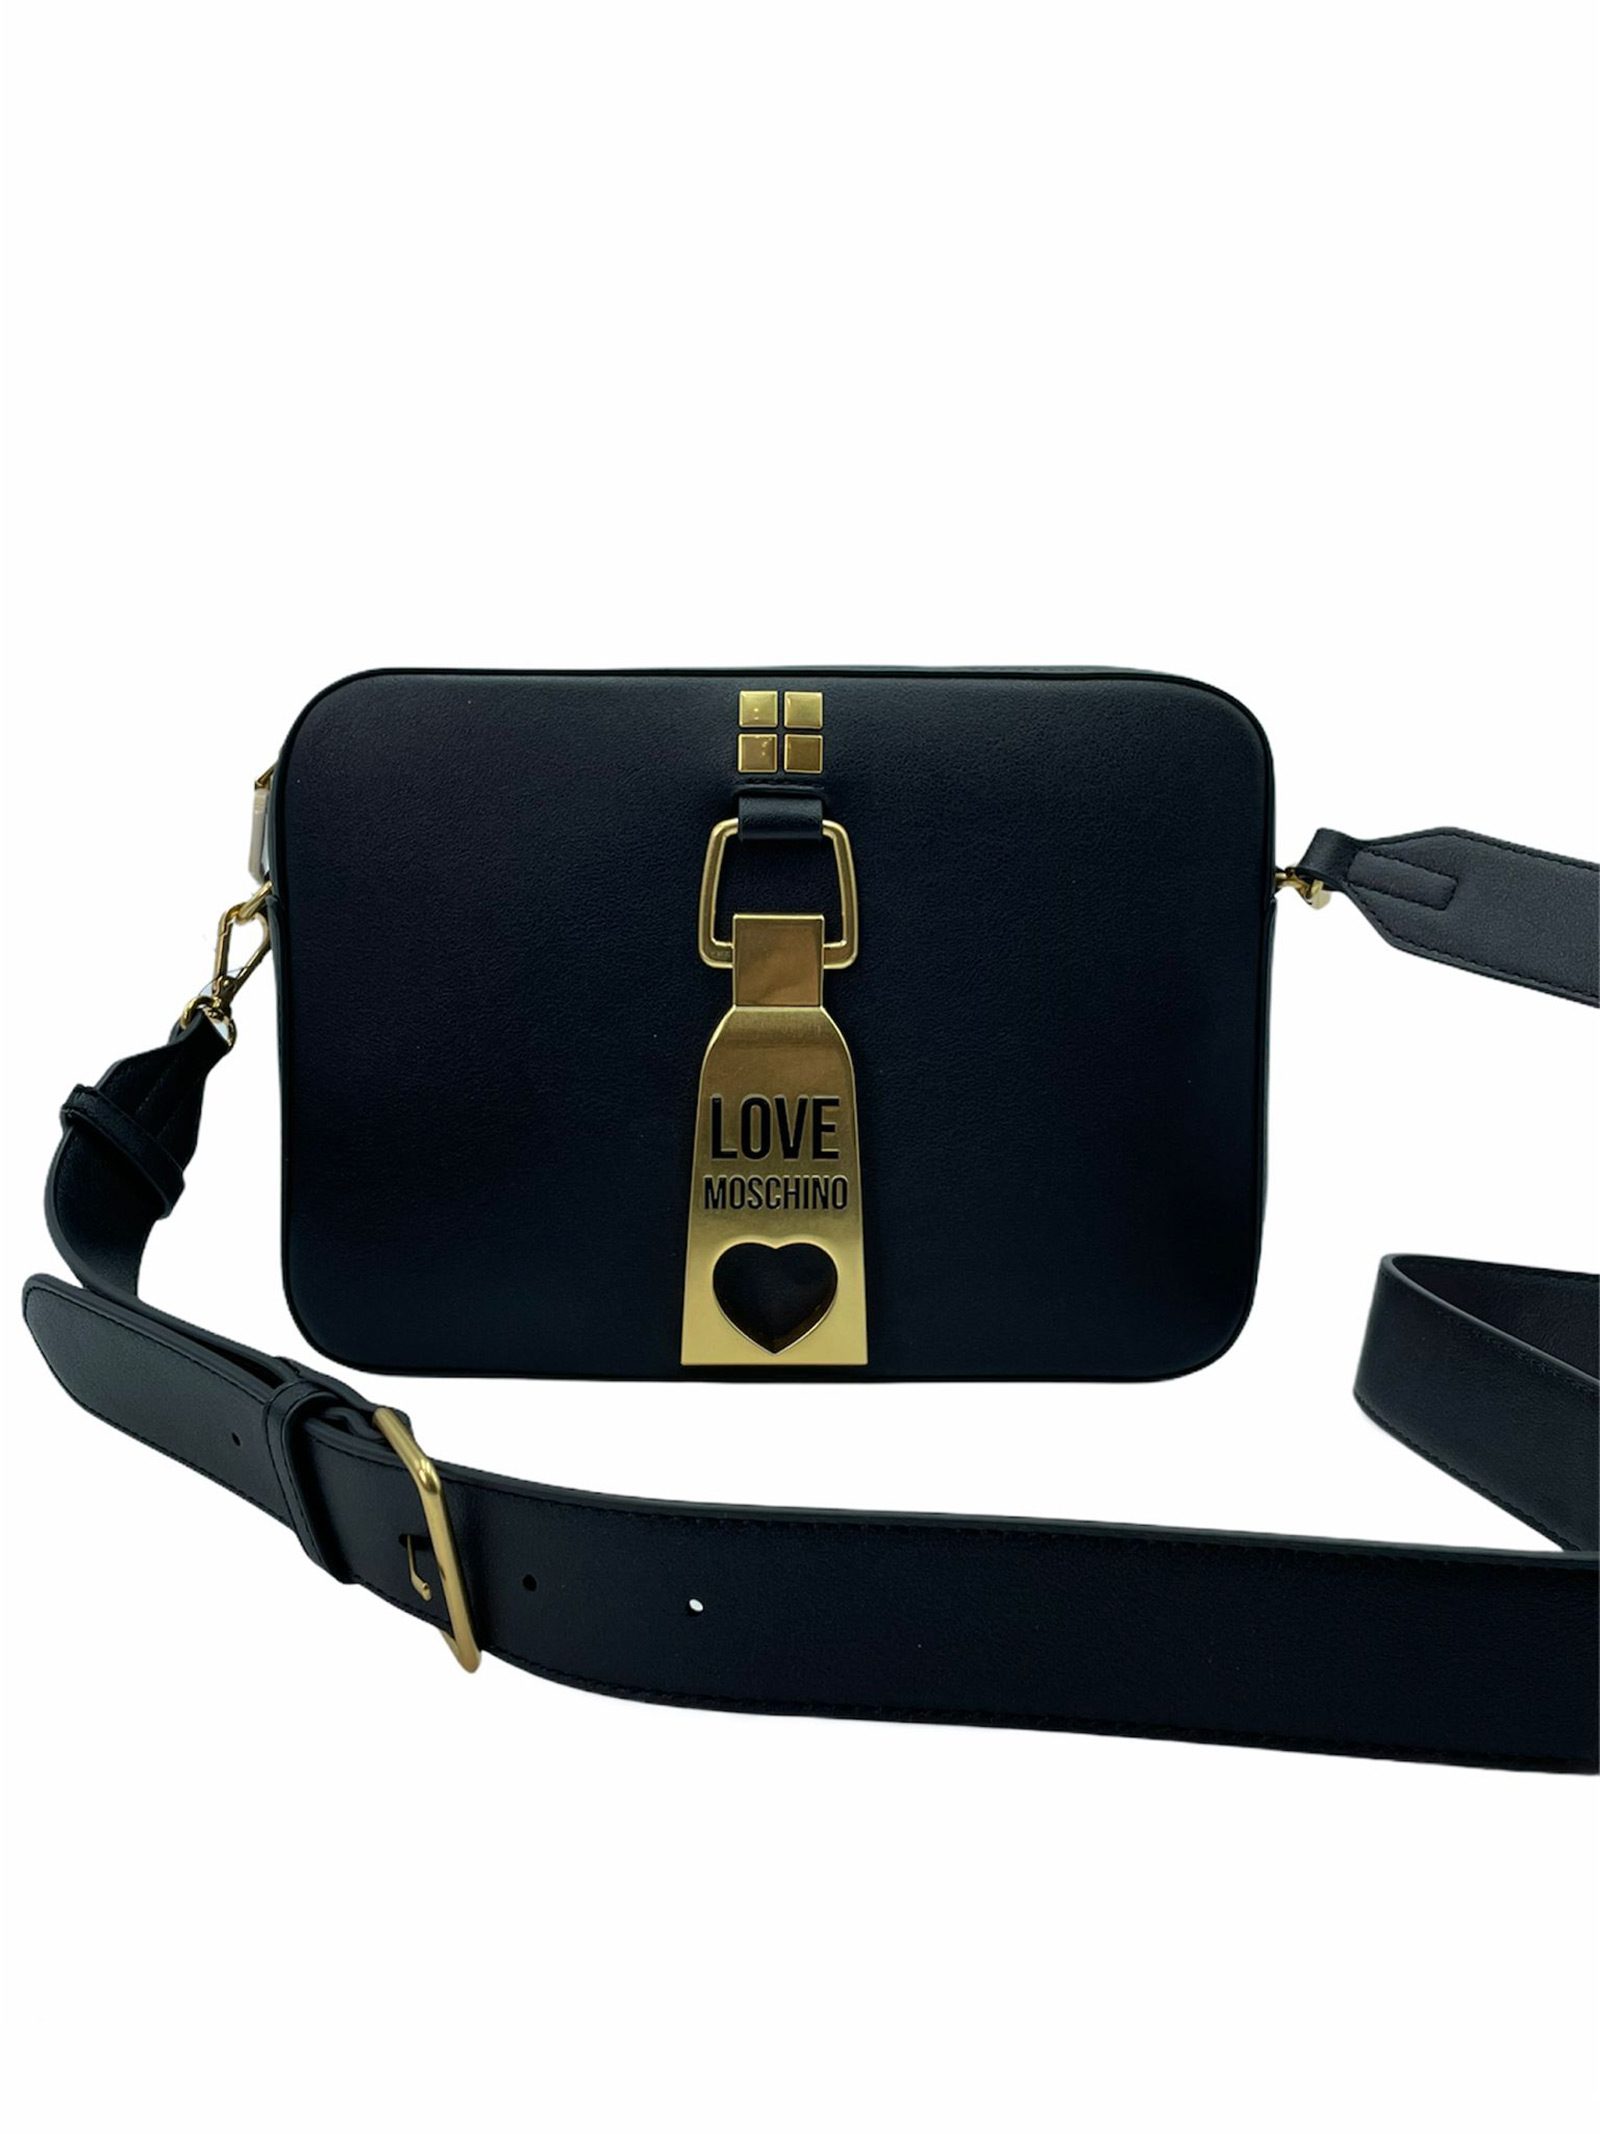 LOVE MOSCHINO |  | JC4086PP1CLN0000NERO